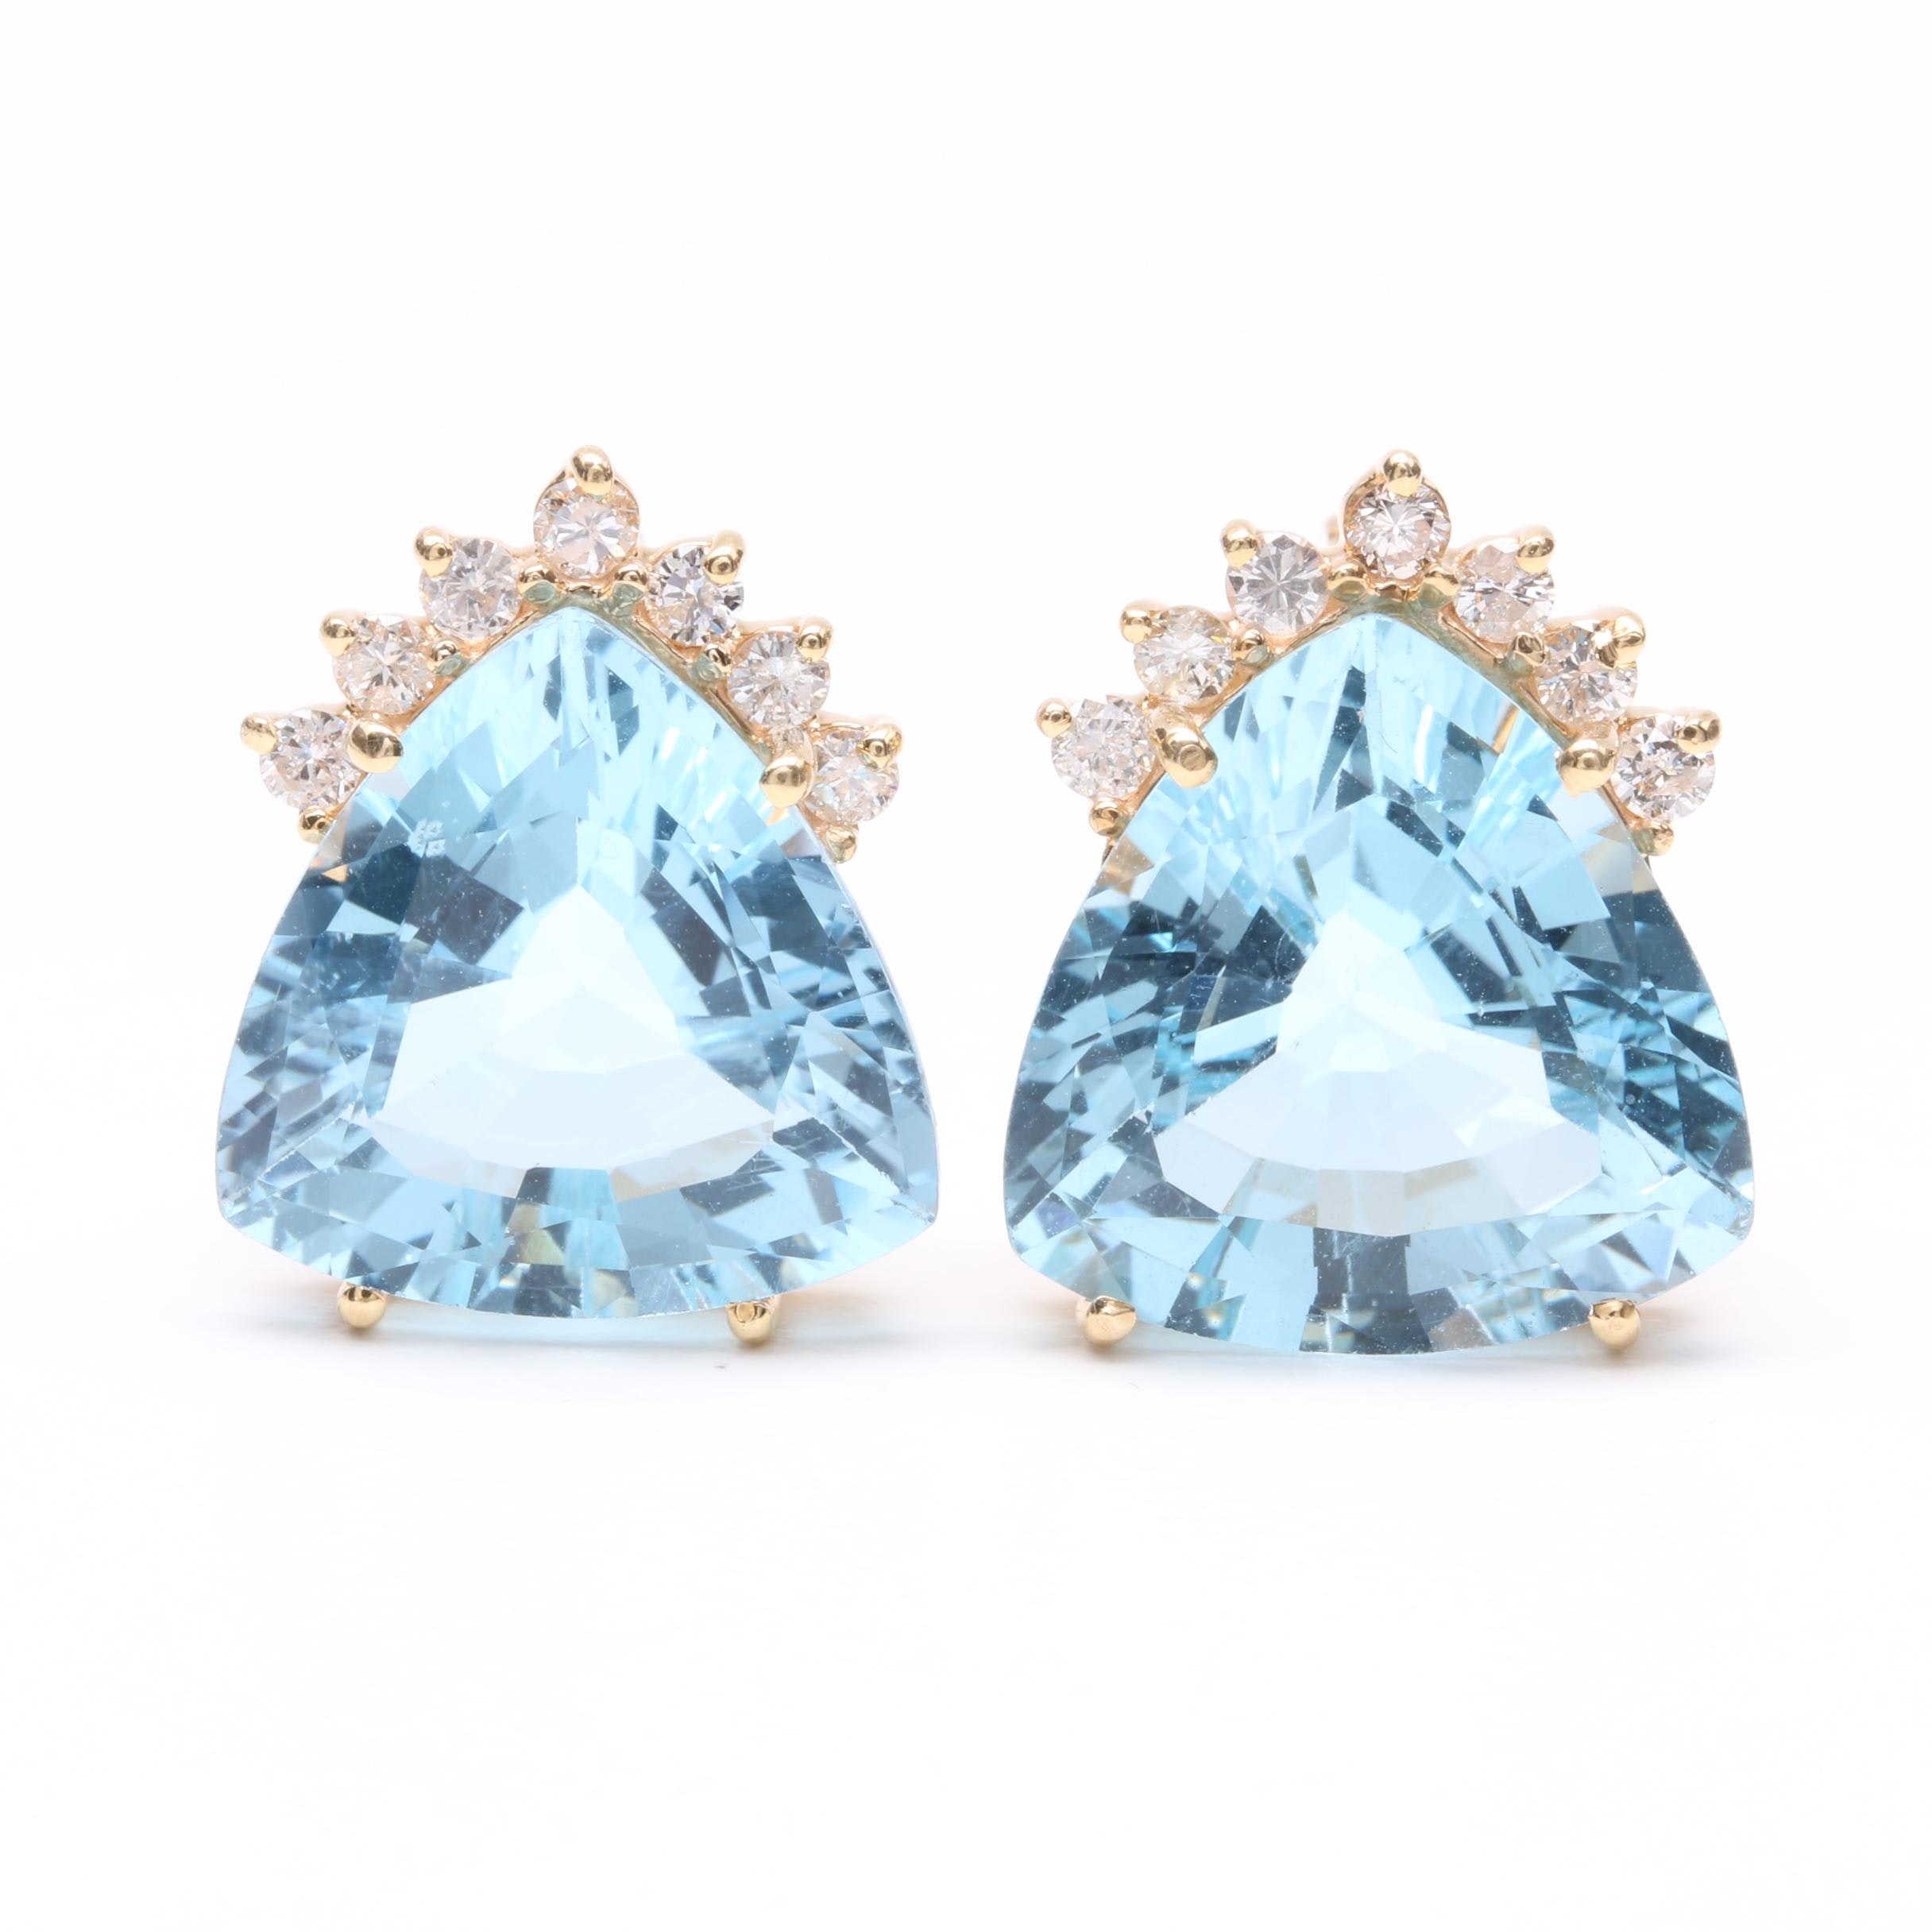 14K Yellow Gold 22.10 CTW Blue Topaz and Diamond Earrings